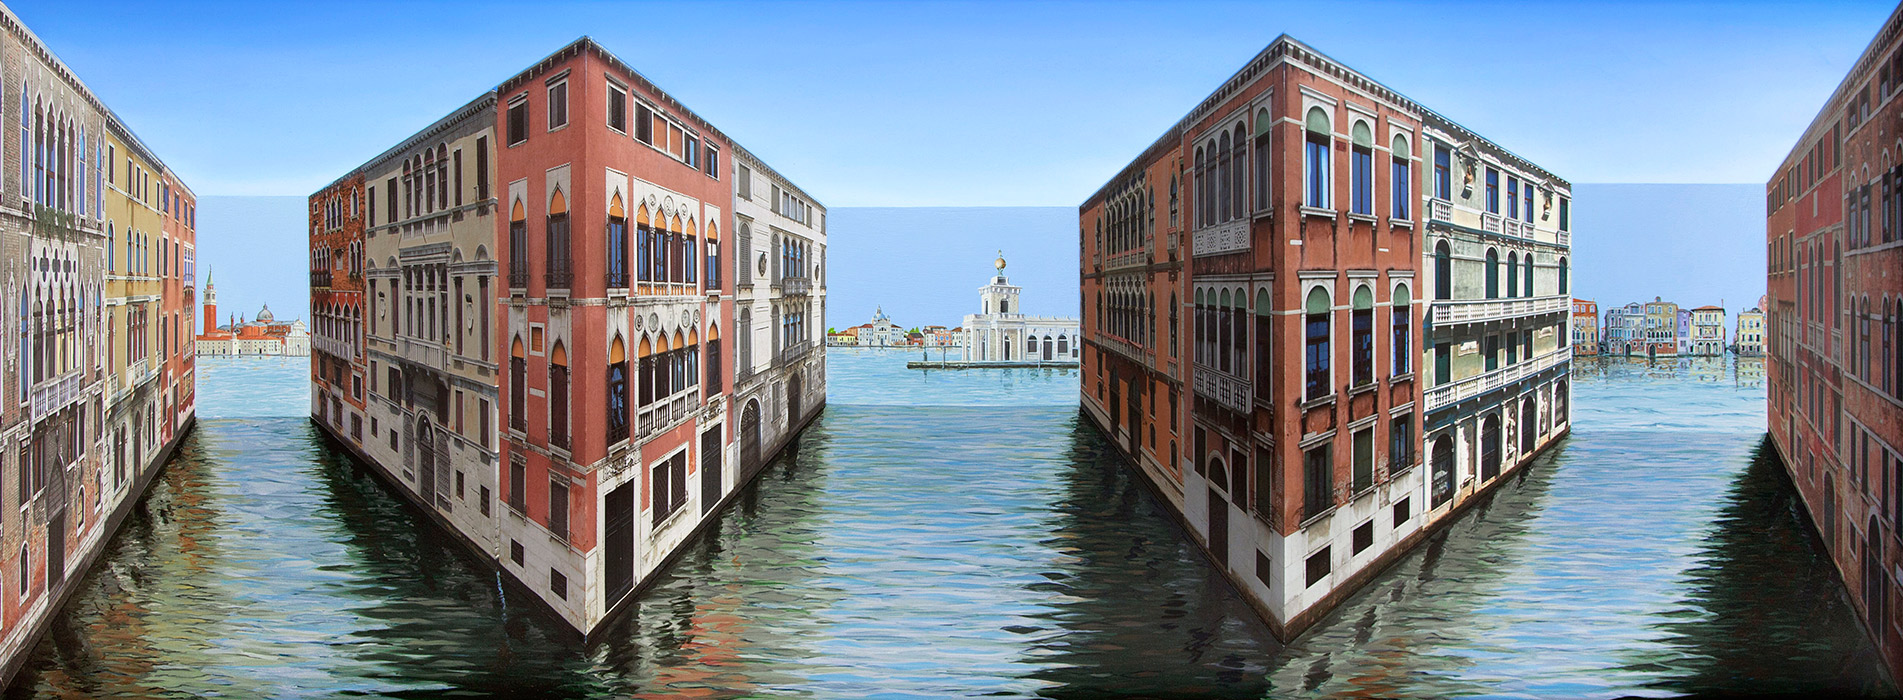 Various Venice <p>2016 | Edition 5 | 58 x 157 x 20 cm / 22⅞ x 61¾ x 7⅞ in</p>